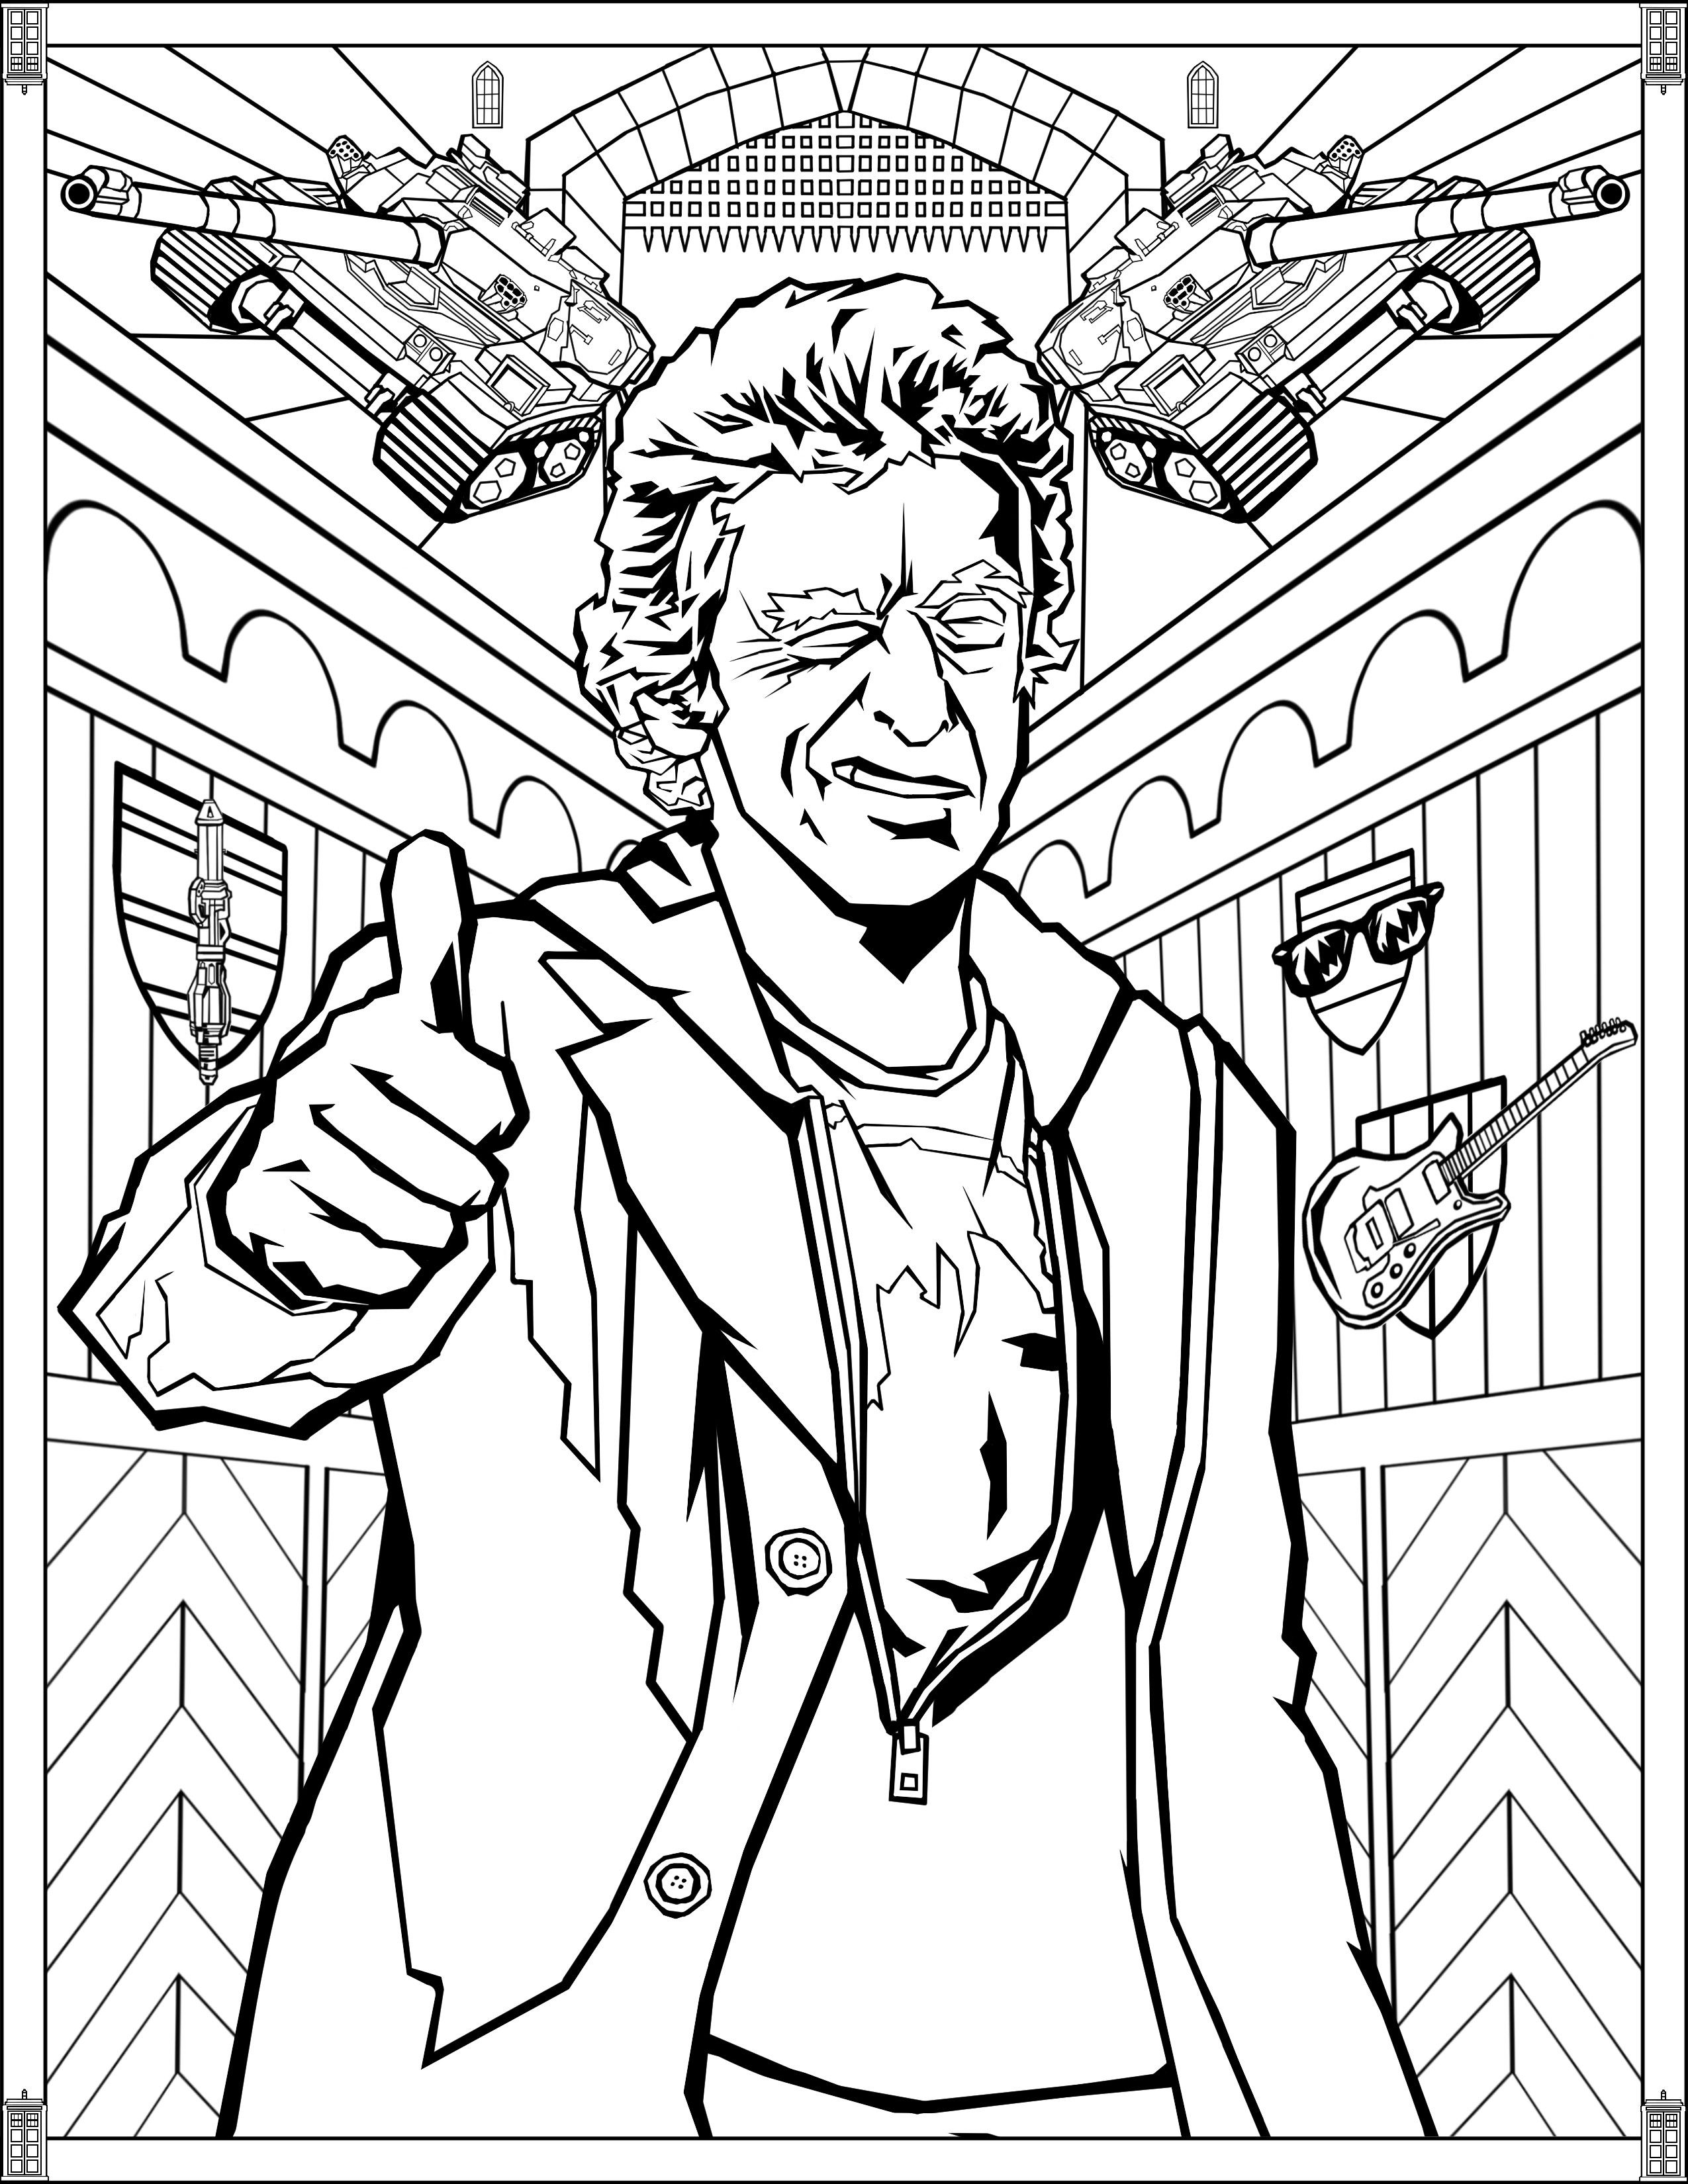 Doctor Who Coloring Pages Doctor Coloring Pages Printable Luxury Doctor Who Wibbly Wobbly Albanysinsanity Com Coloring Books Coloring Pages Vintage Coloring Books